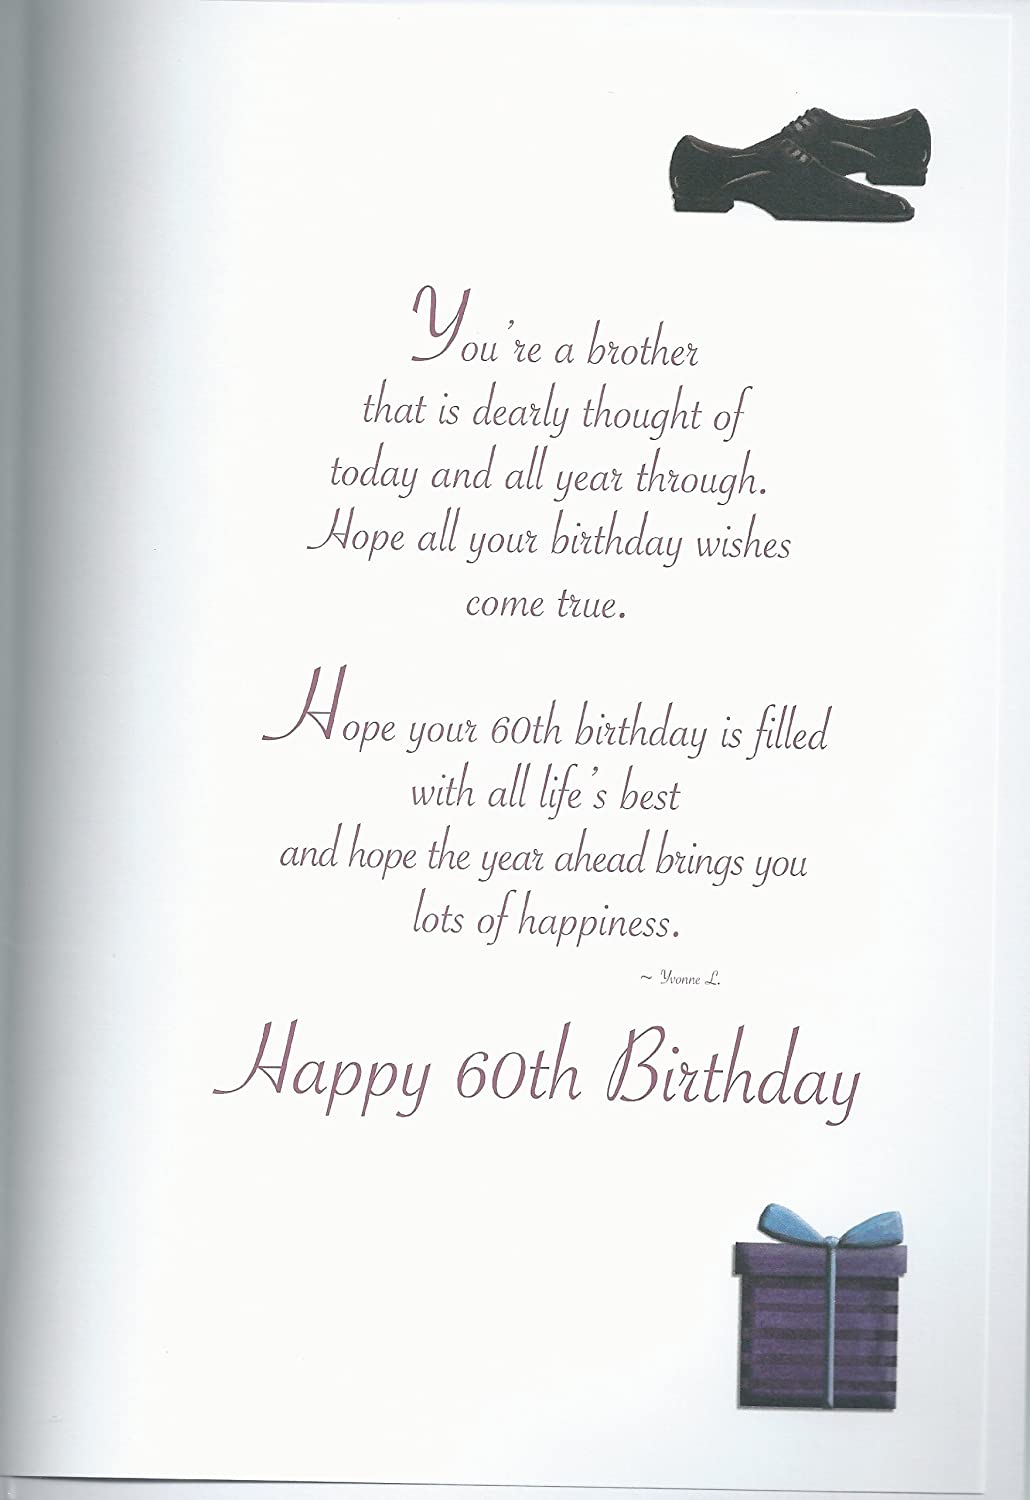 amazoncom special for you brother happy 60th birthday card home kitchen